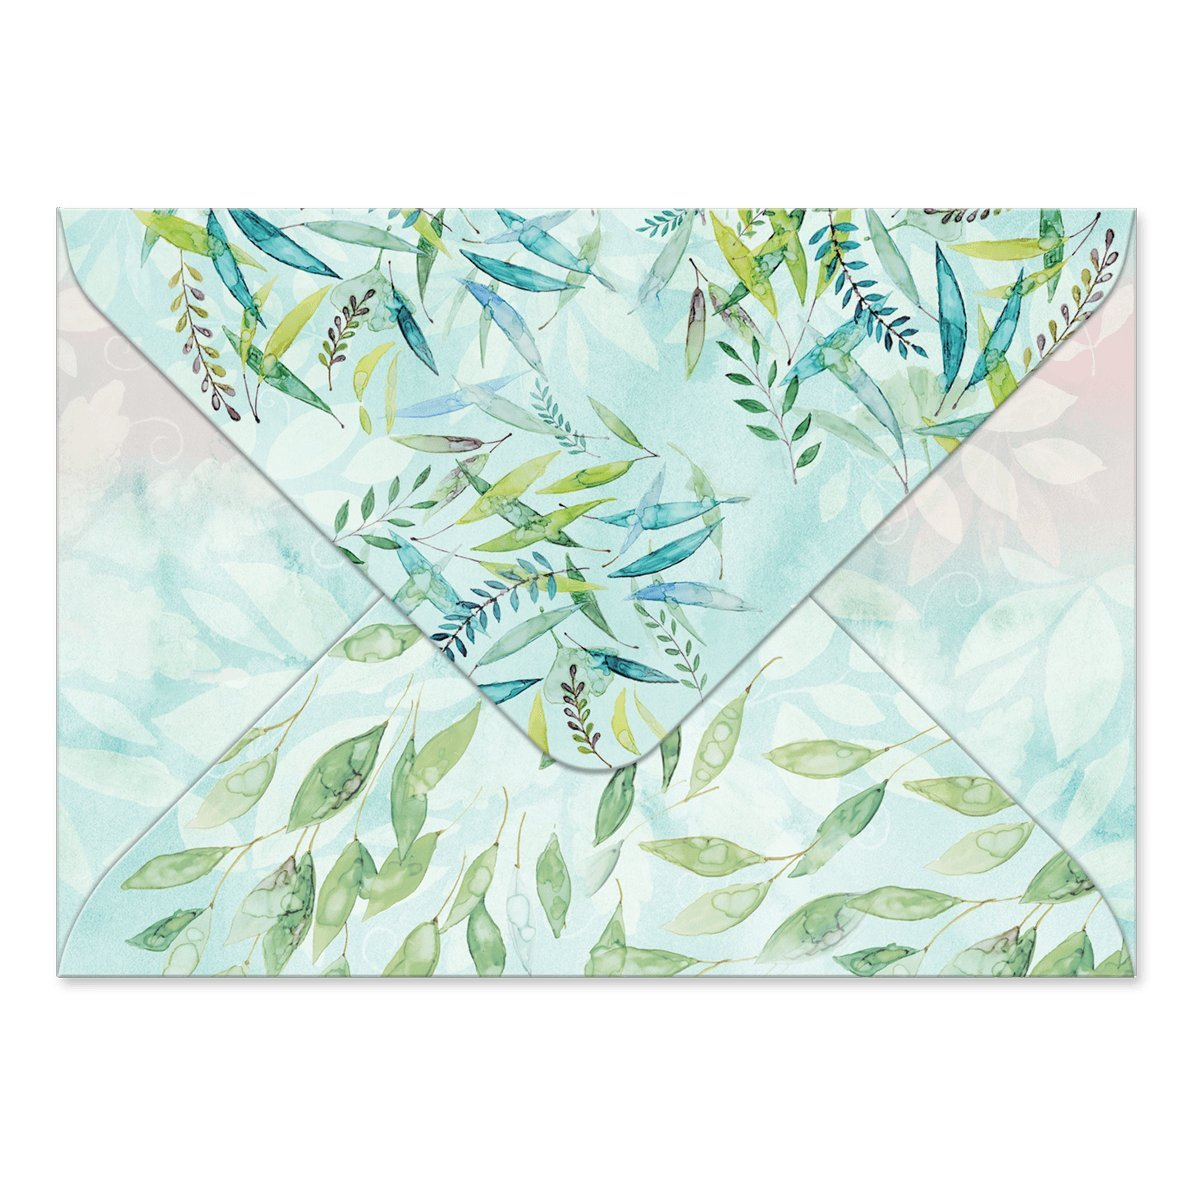 Pagoda Peacock Decorative Pouch Note Cards Punch Studio Set of 10